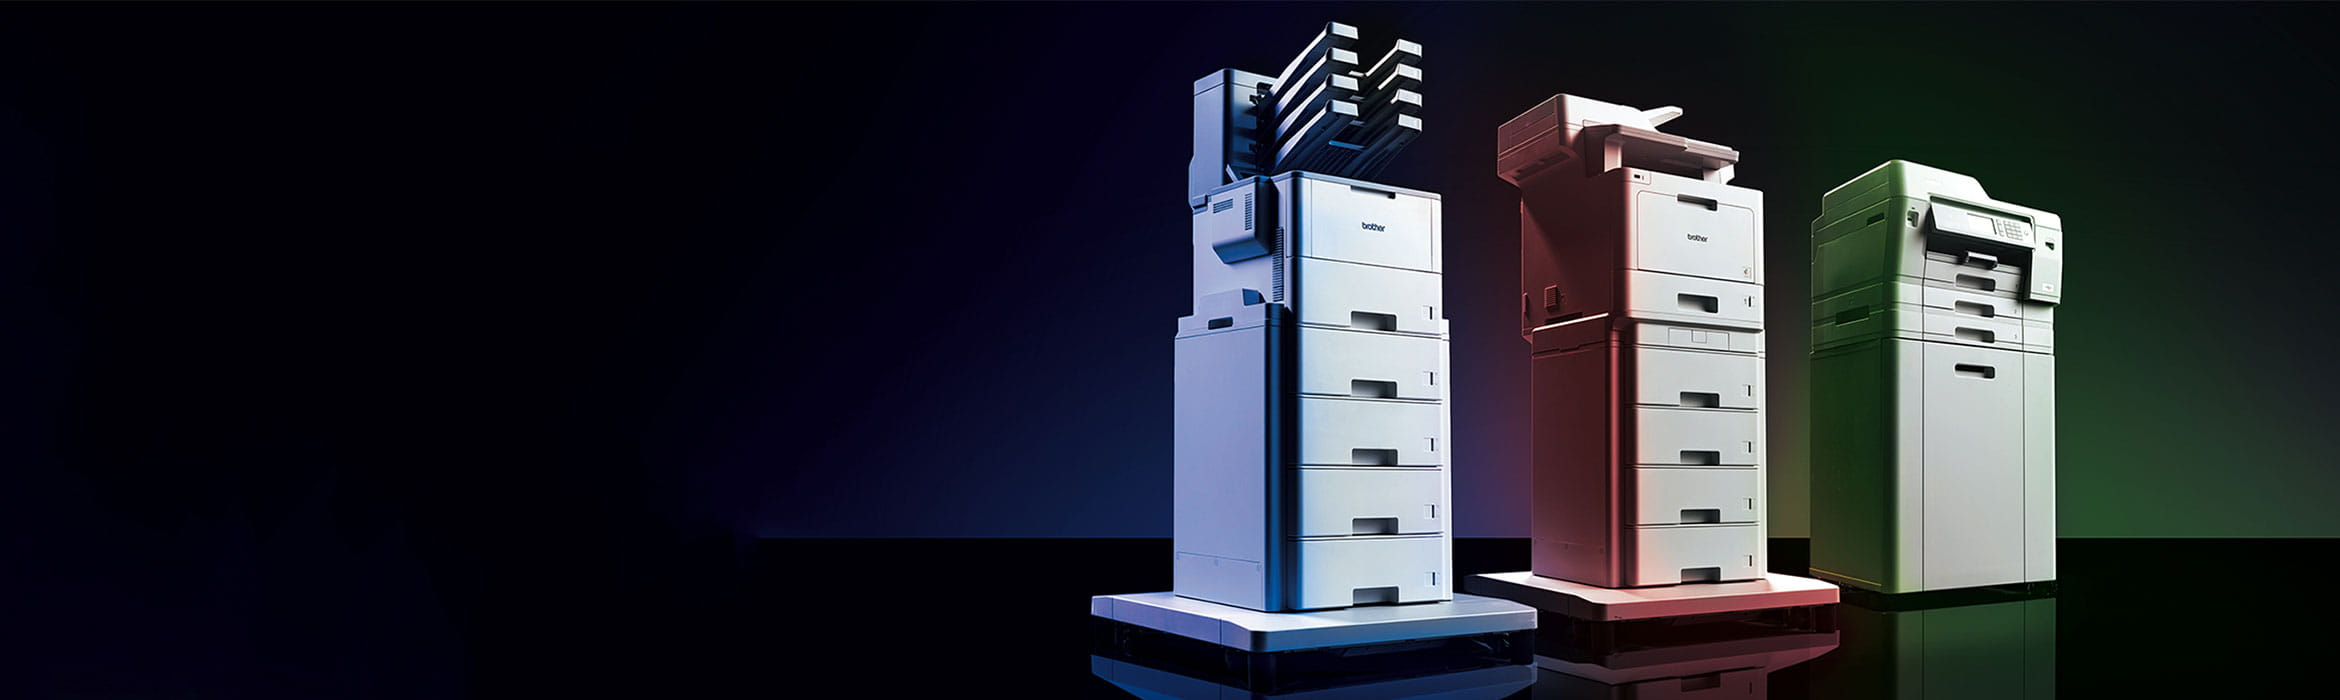 Brother HL-L9310CDW, MFC-L9570CDW and MFC-J6947DW professional printer range on black background with blue, red and green lighting.